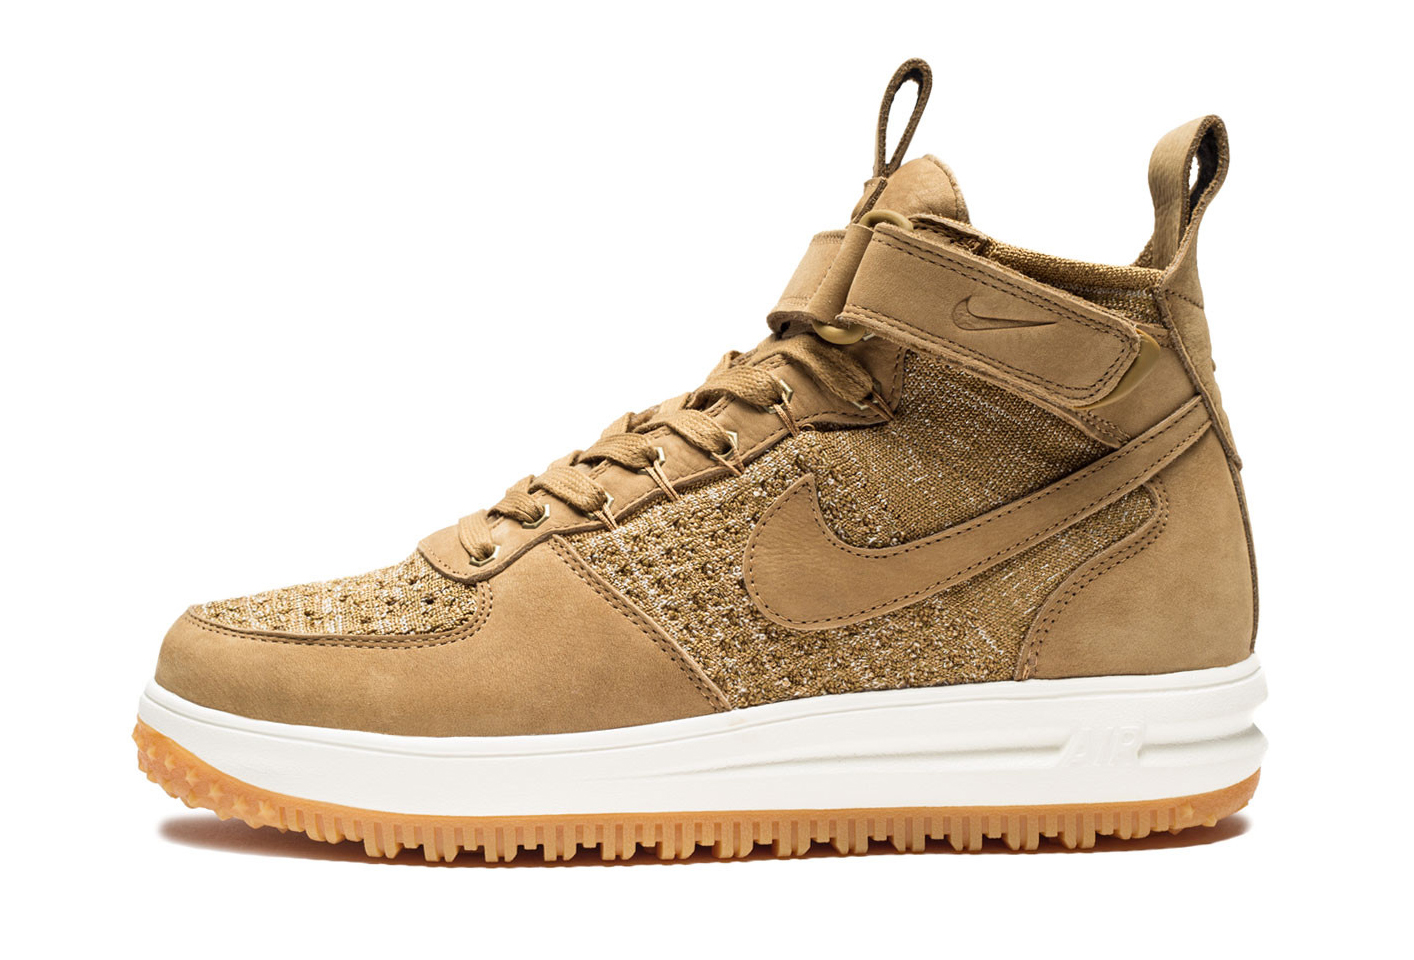 Wheat Nike Air Force 1 Boot Profile